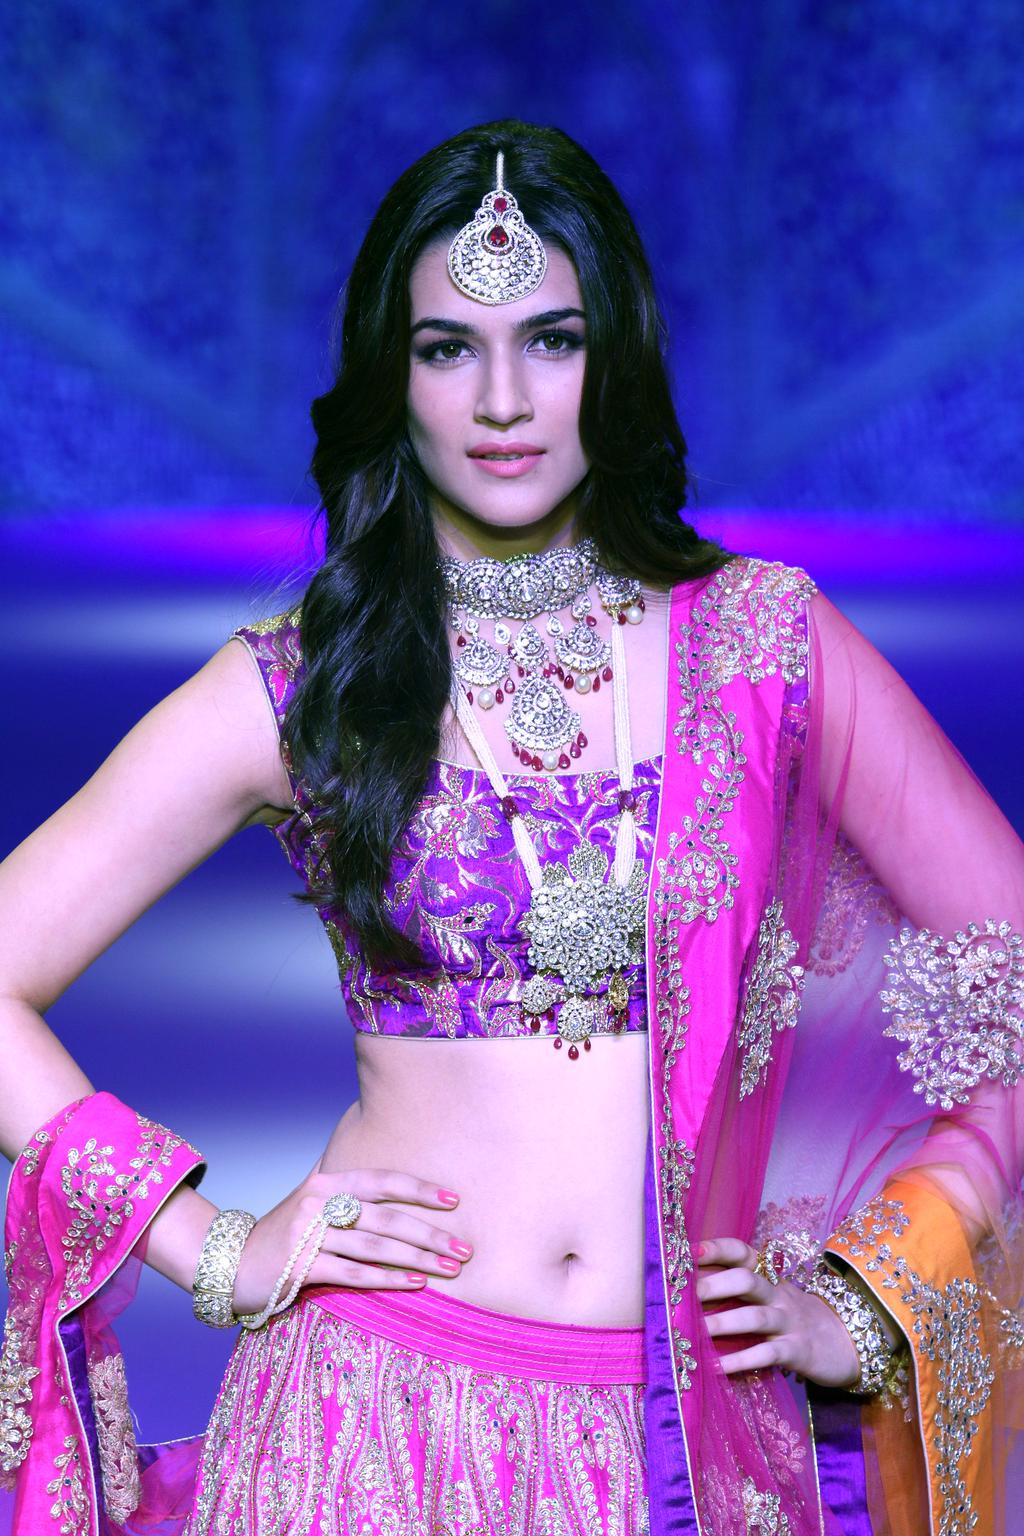 Amazing Kriti Sanon Cute Style Pictures Mobile Background Hd Free Desktop